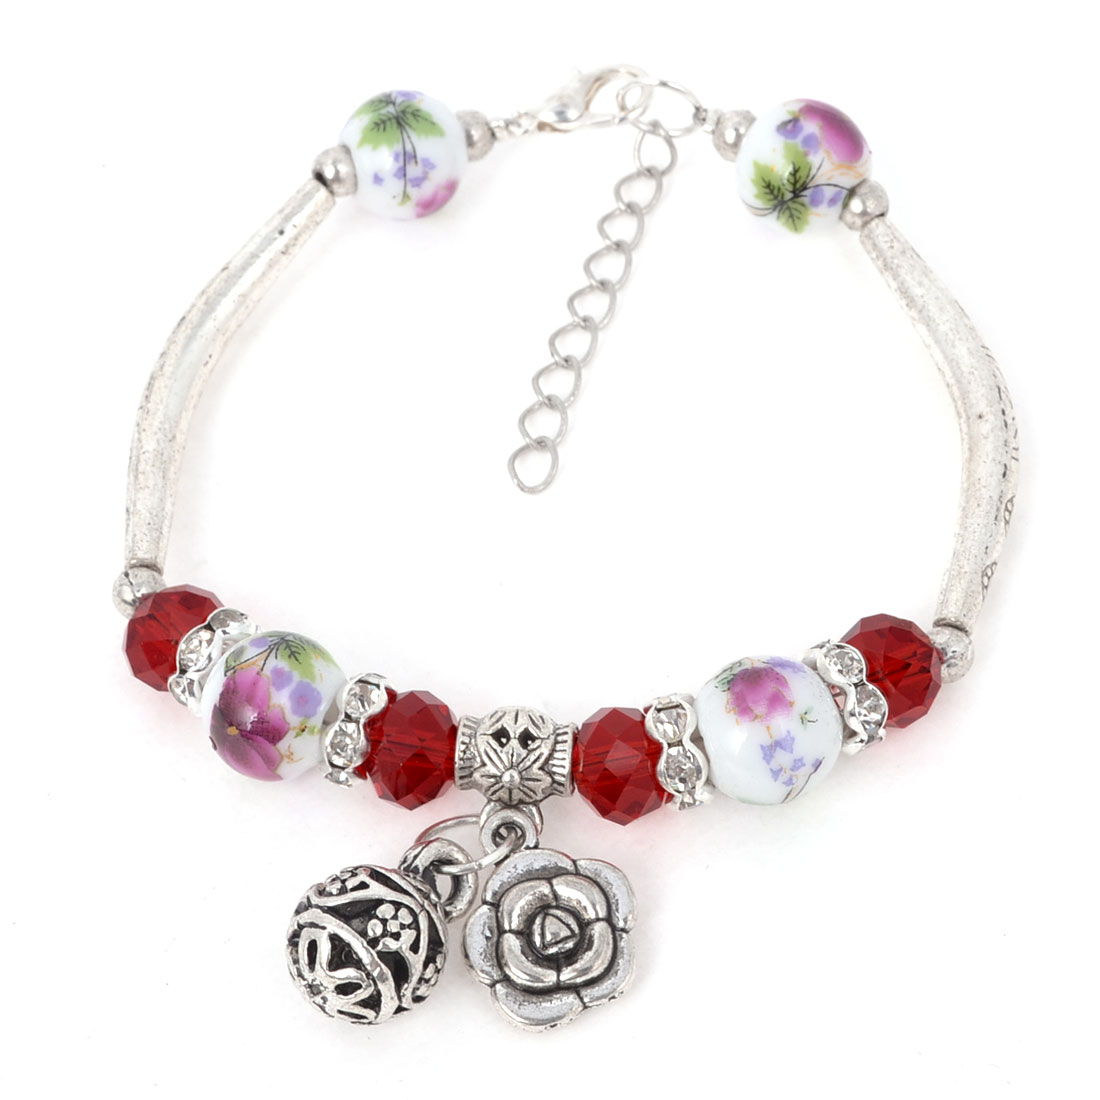 Women Wrist Ornament Red Crystal Linked Round Ceramic Beads Bracelet Silver Tone